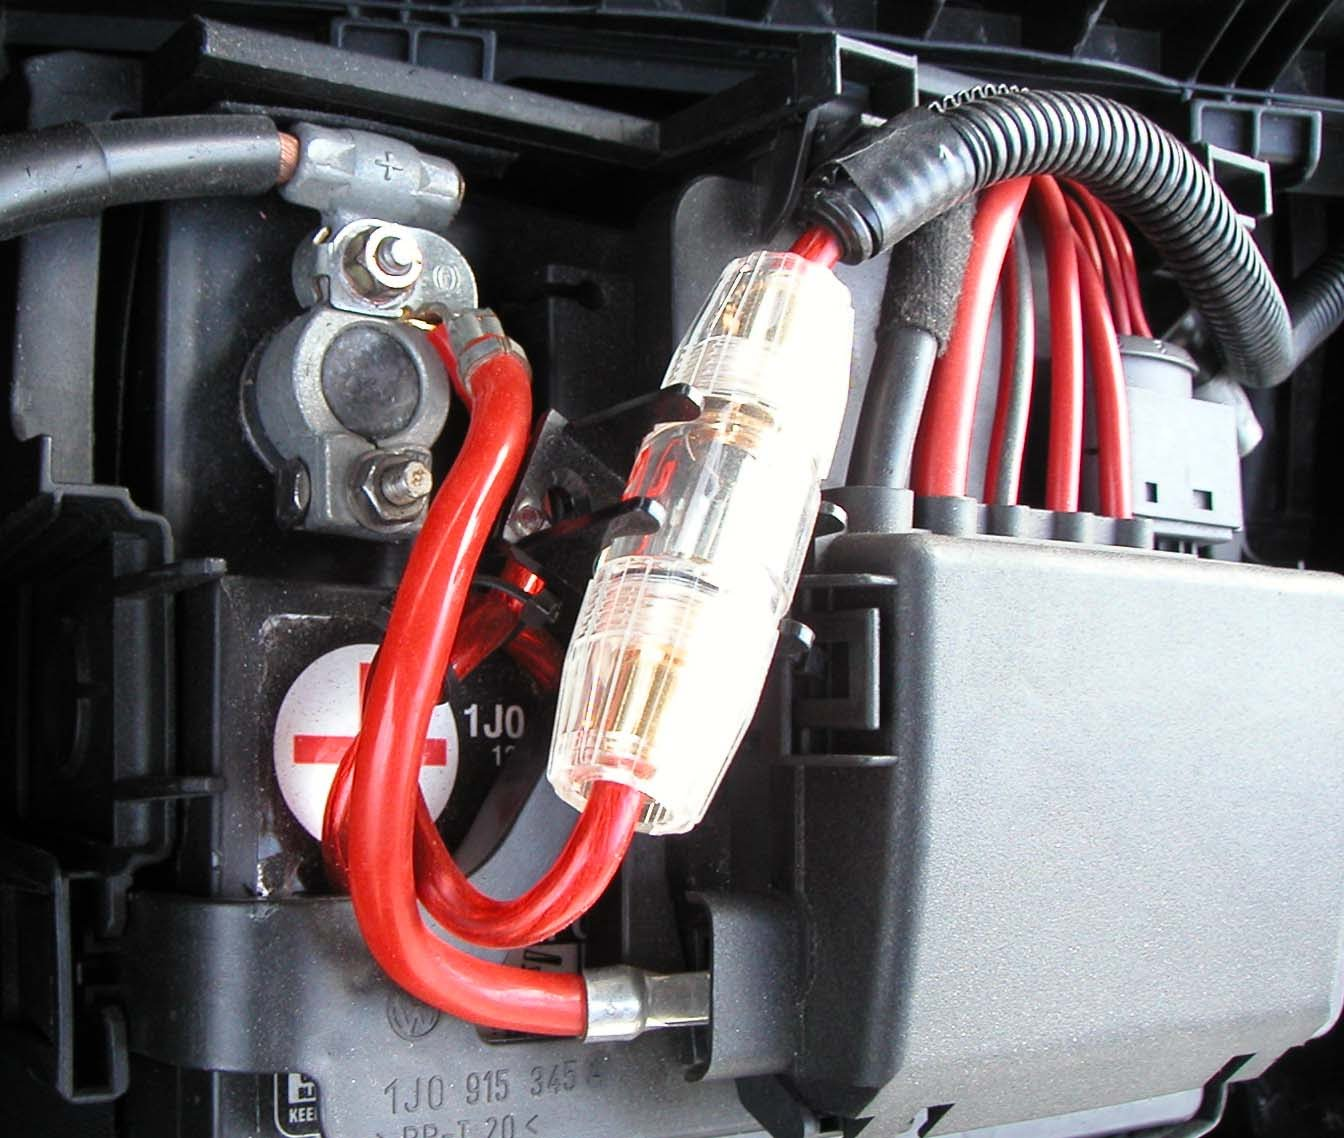 Car amp power wire fuse wire center how to add fuse holder to car amp power wire how to install car rh how to install car audio systems blogspot com wire size amp for car wire size amp for car greentooth Image collections